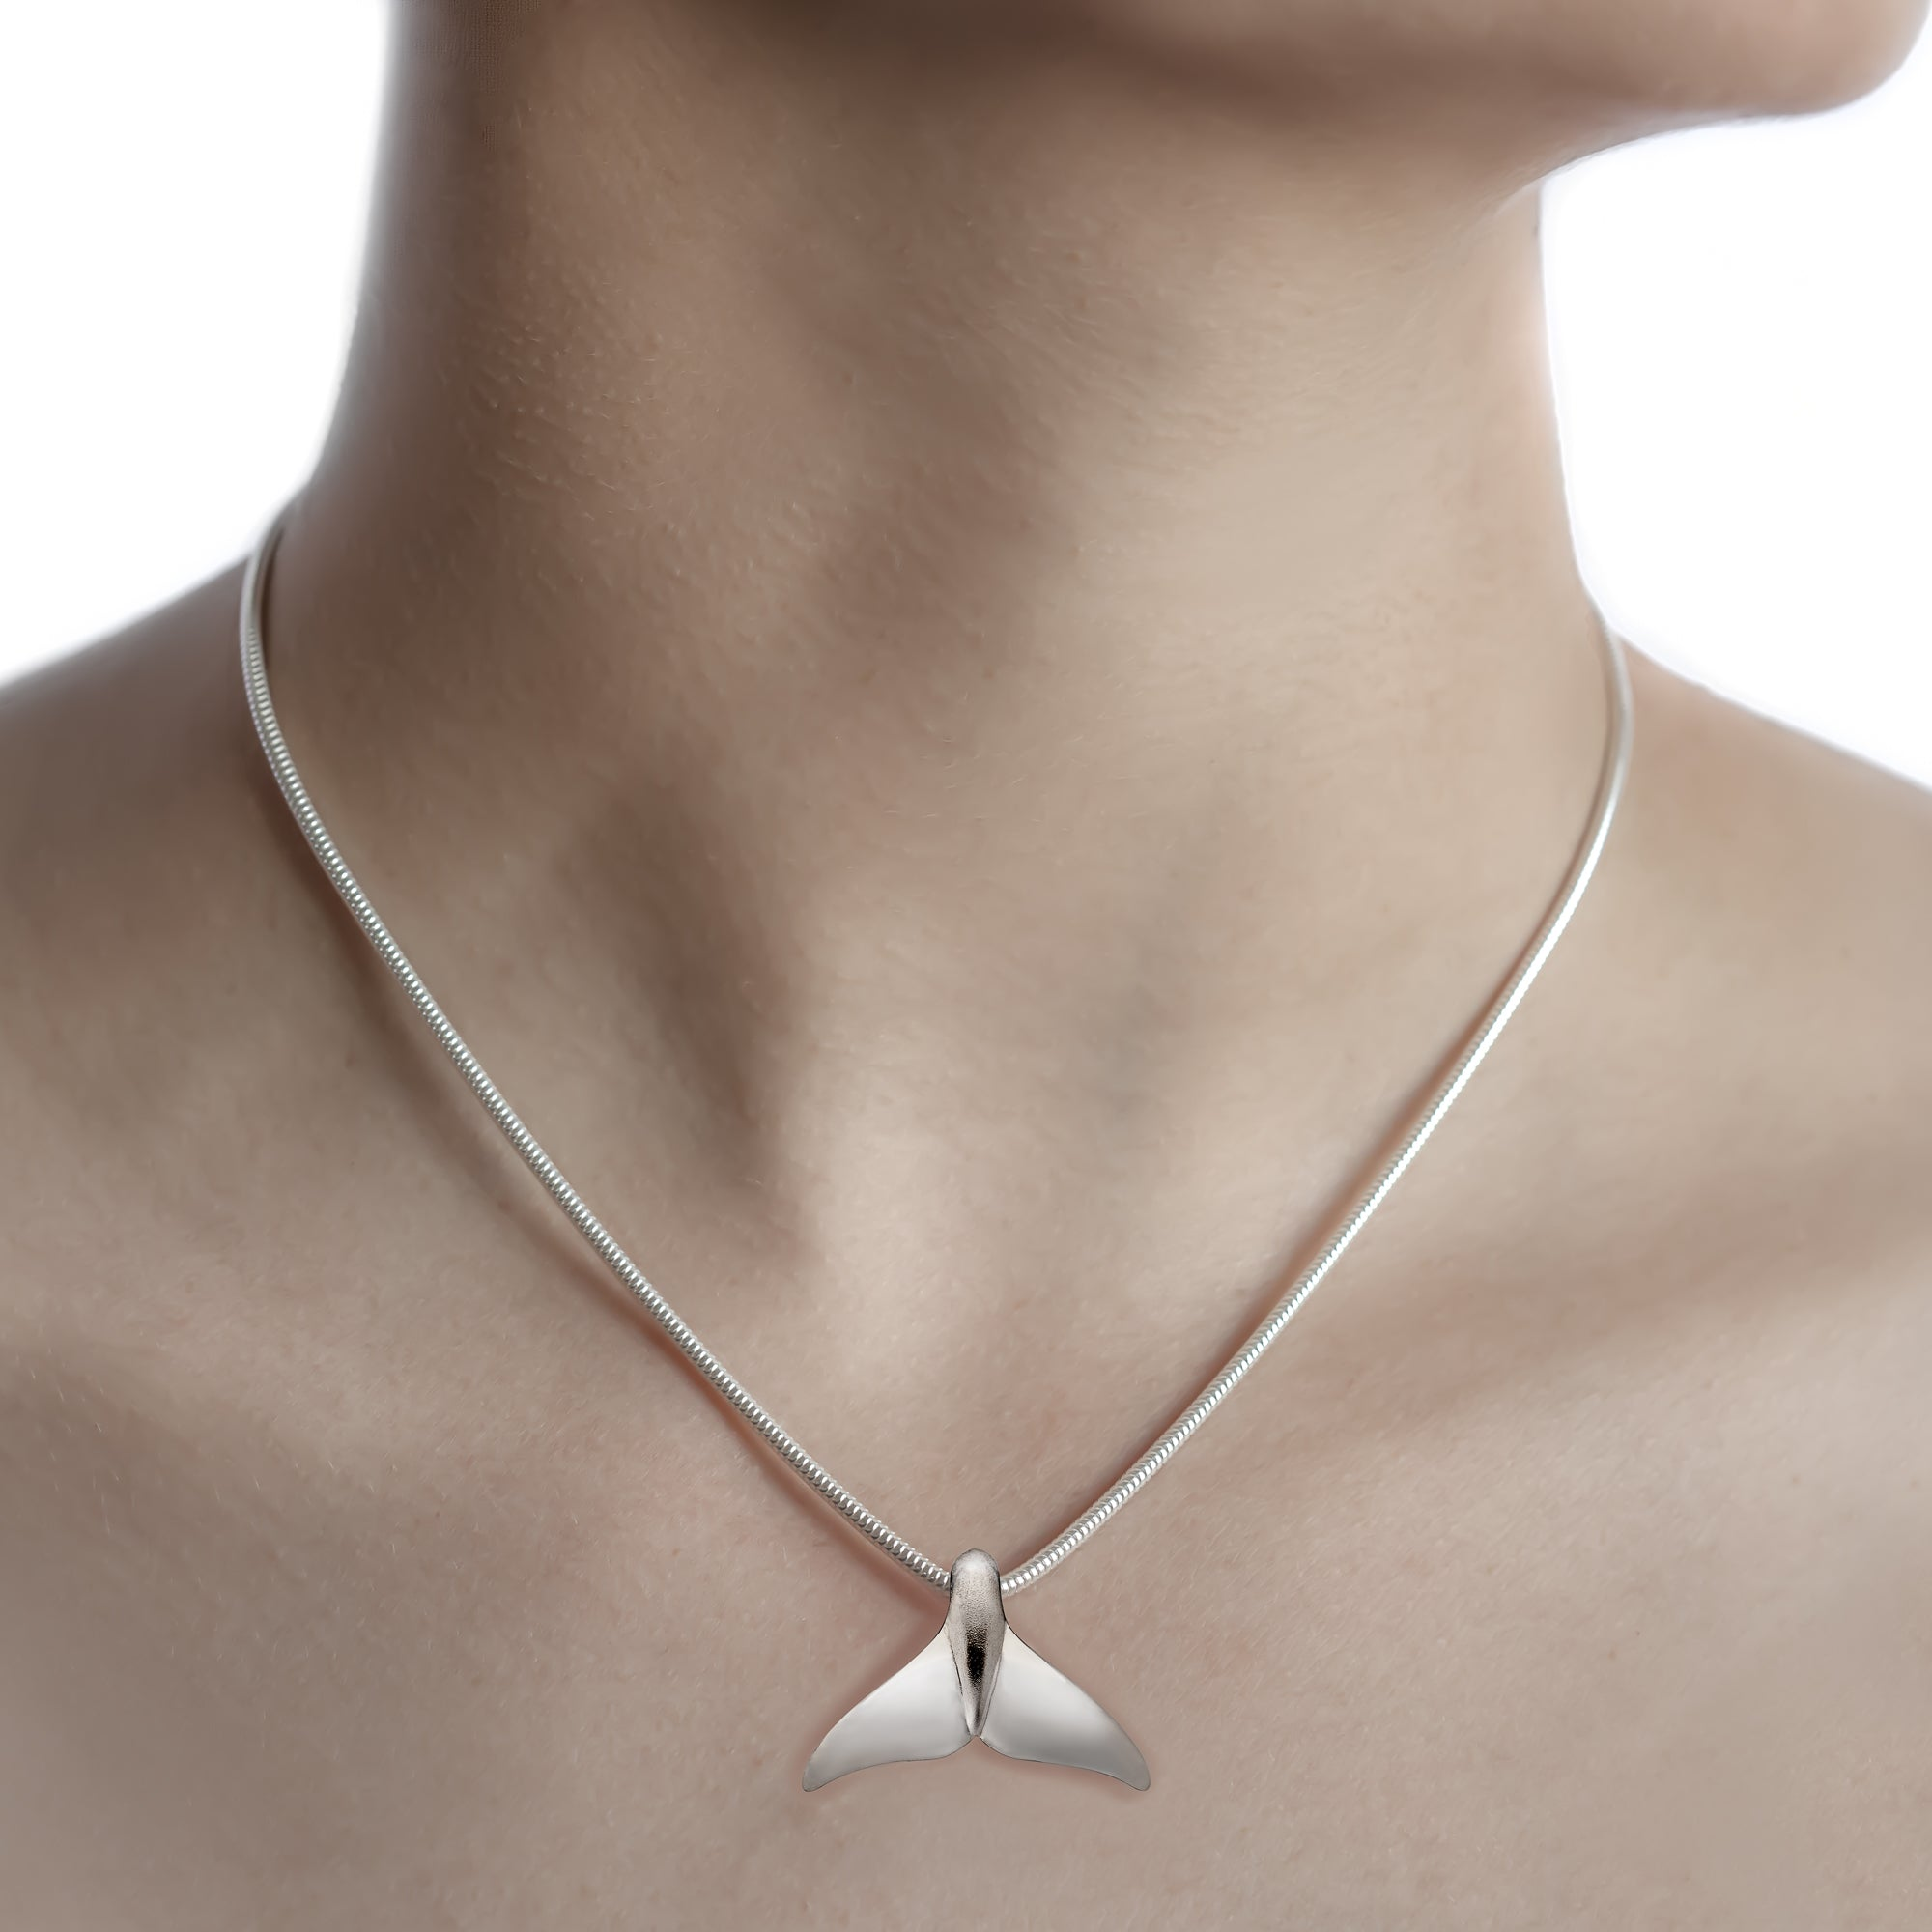 Humpback Whale Tail/Fluke Necklace on silver chain